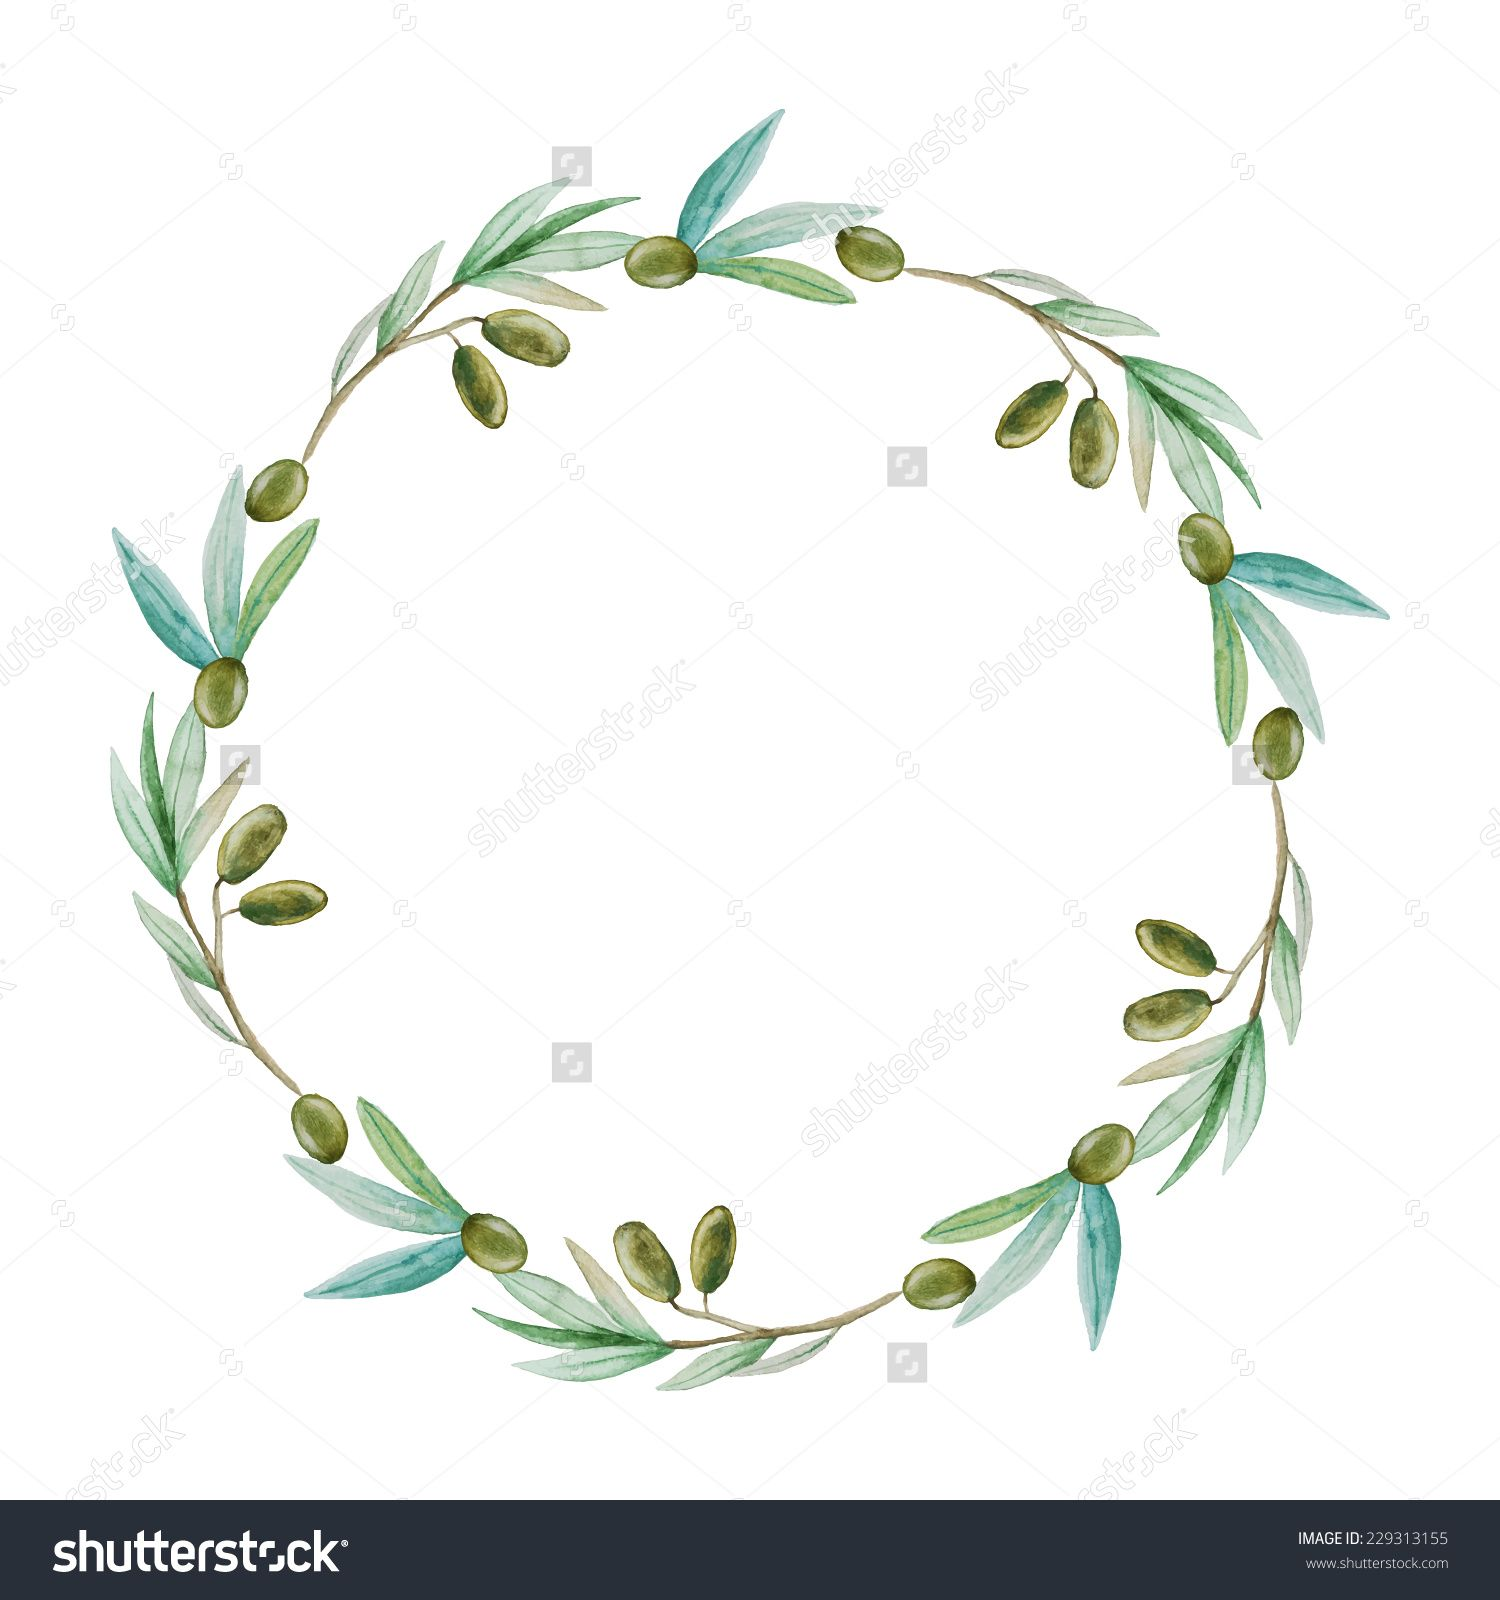 1500x1600 Watercolor Olive Branch Wreath. Hand Drawn Natural Vector Frame